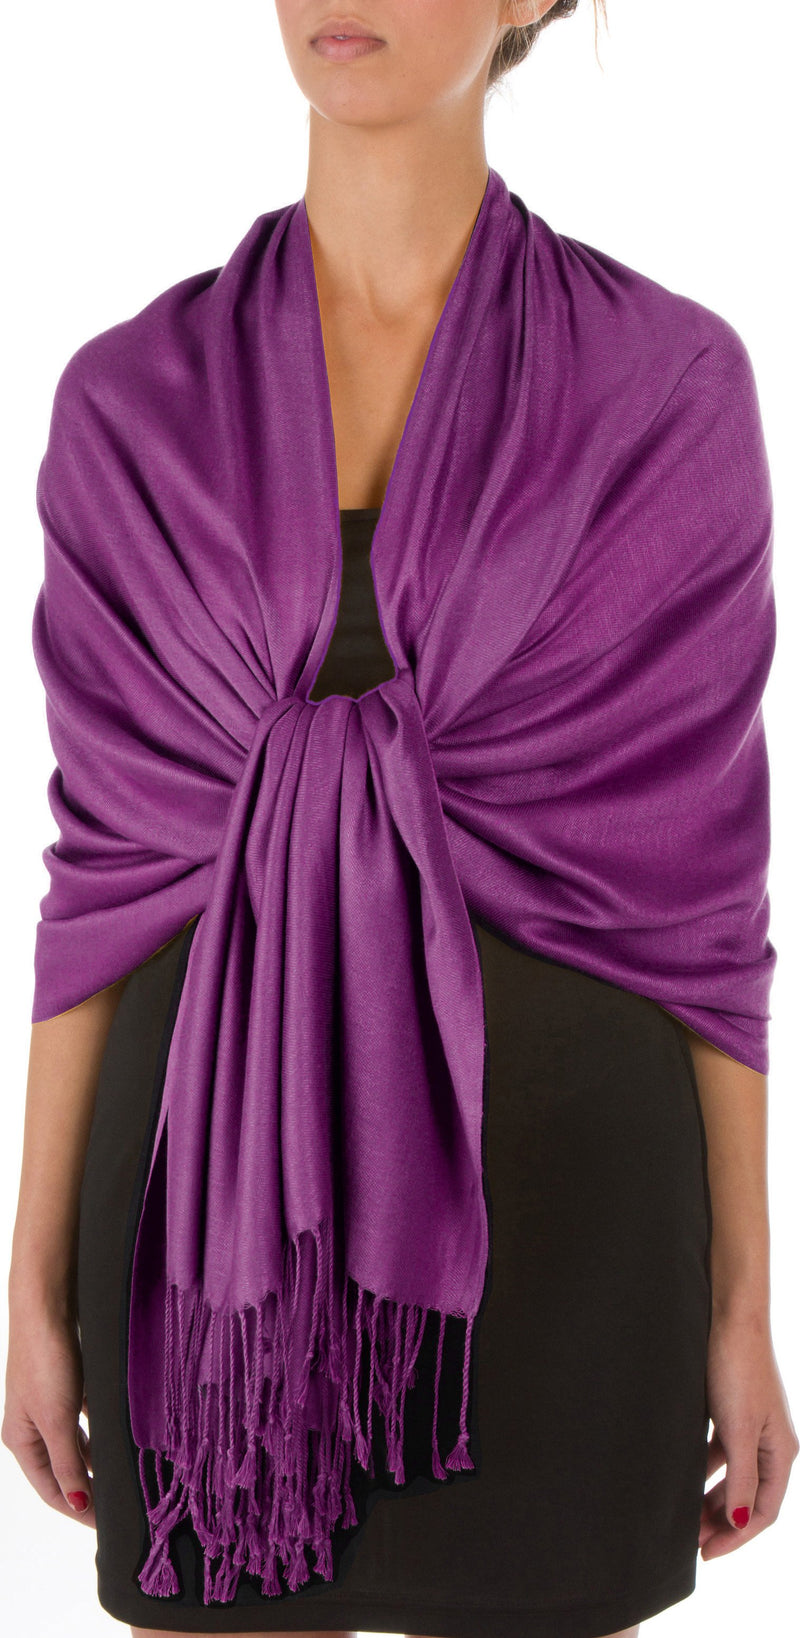 "Sakkas 78"" X 28"" Rayon from Bamboo Soft Solid Pashmina Feel Shawl / Wrap / Stole"